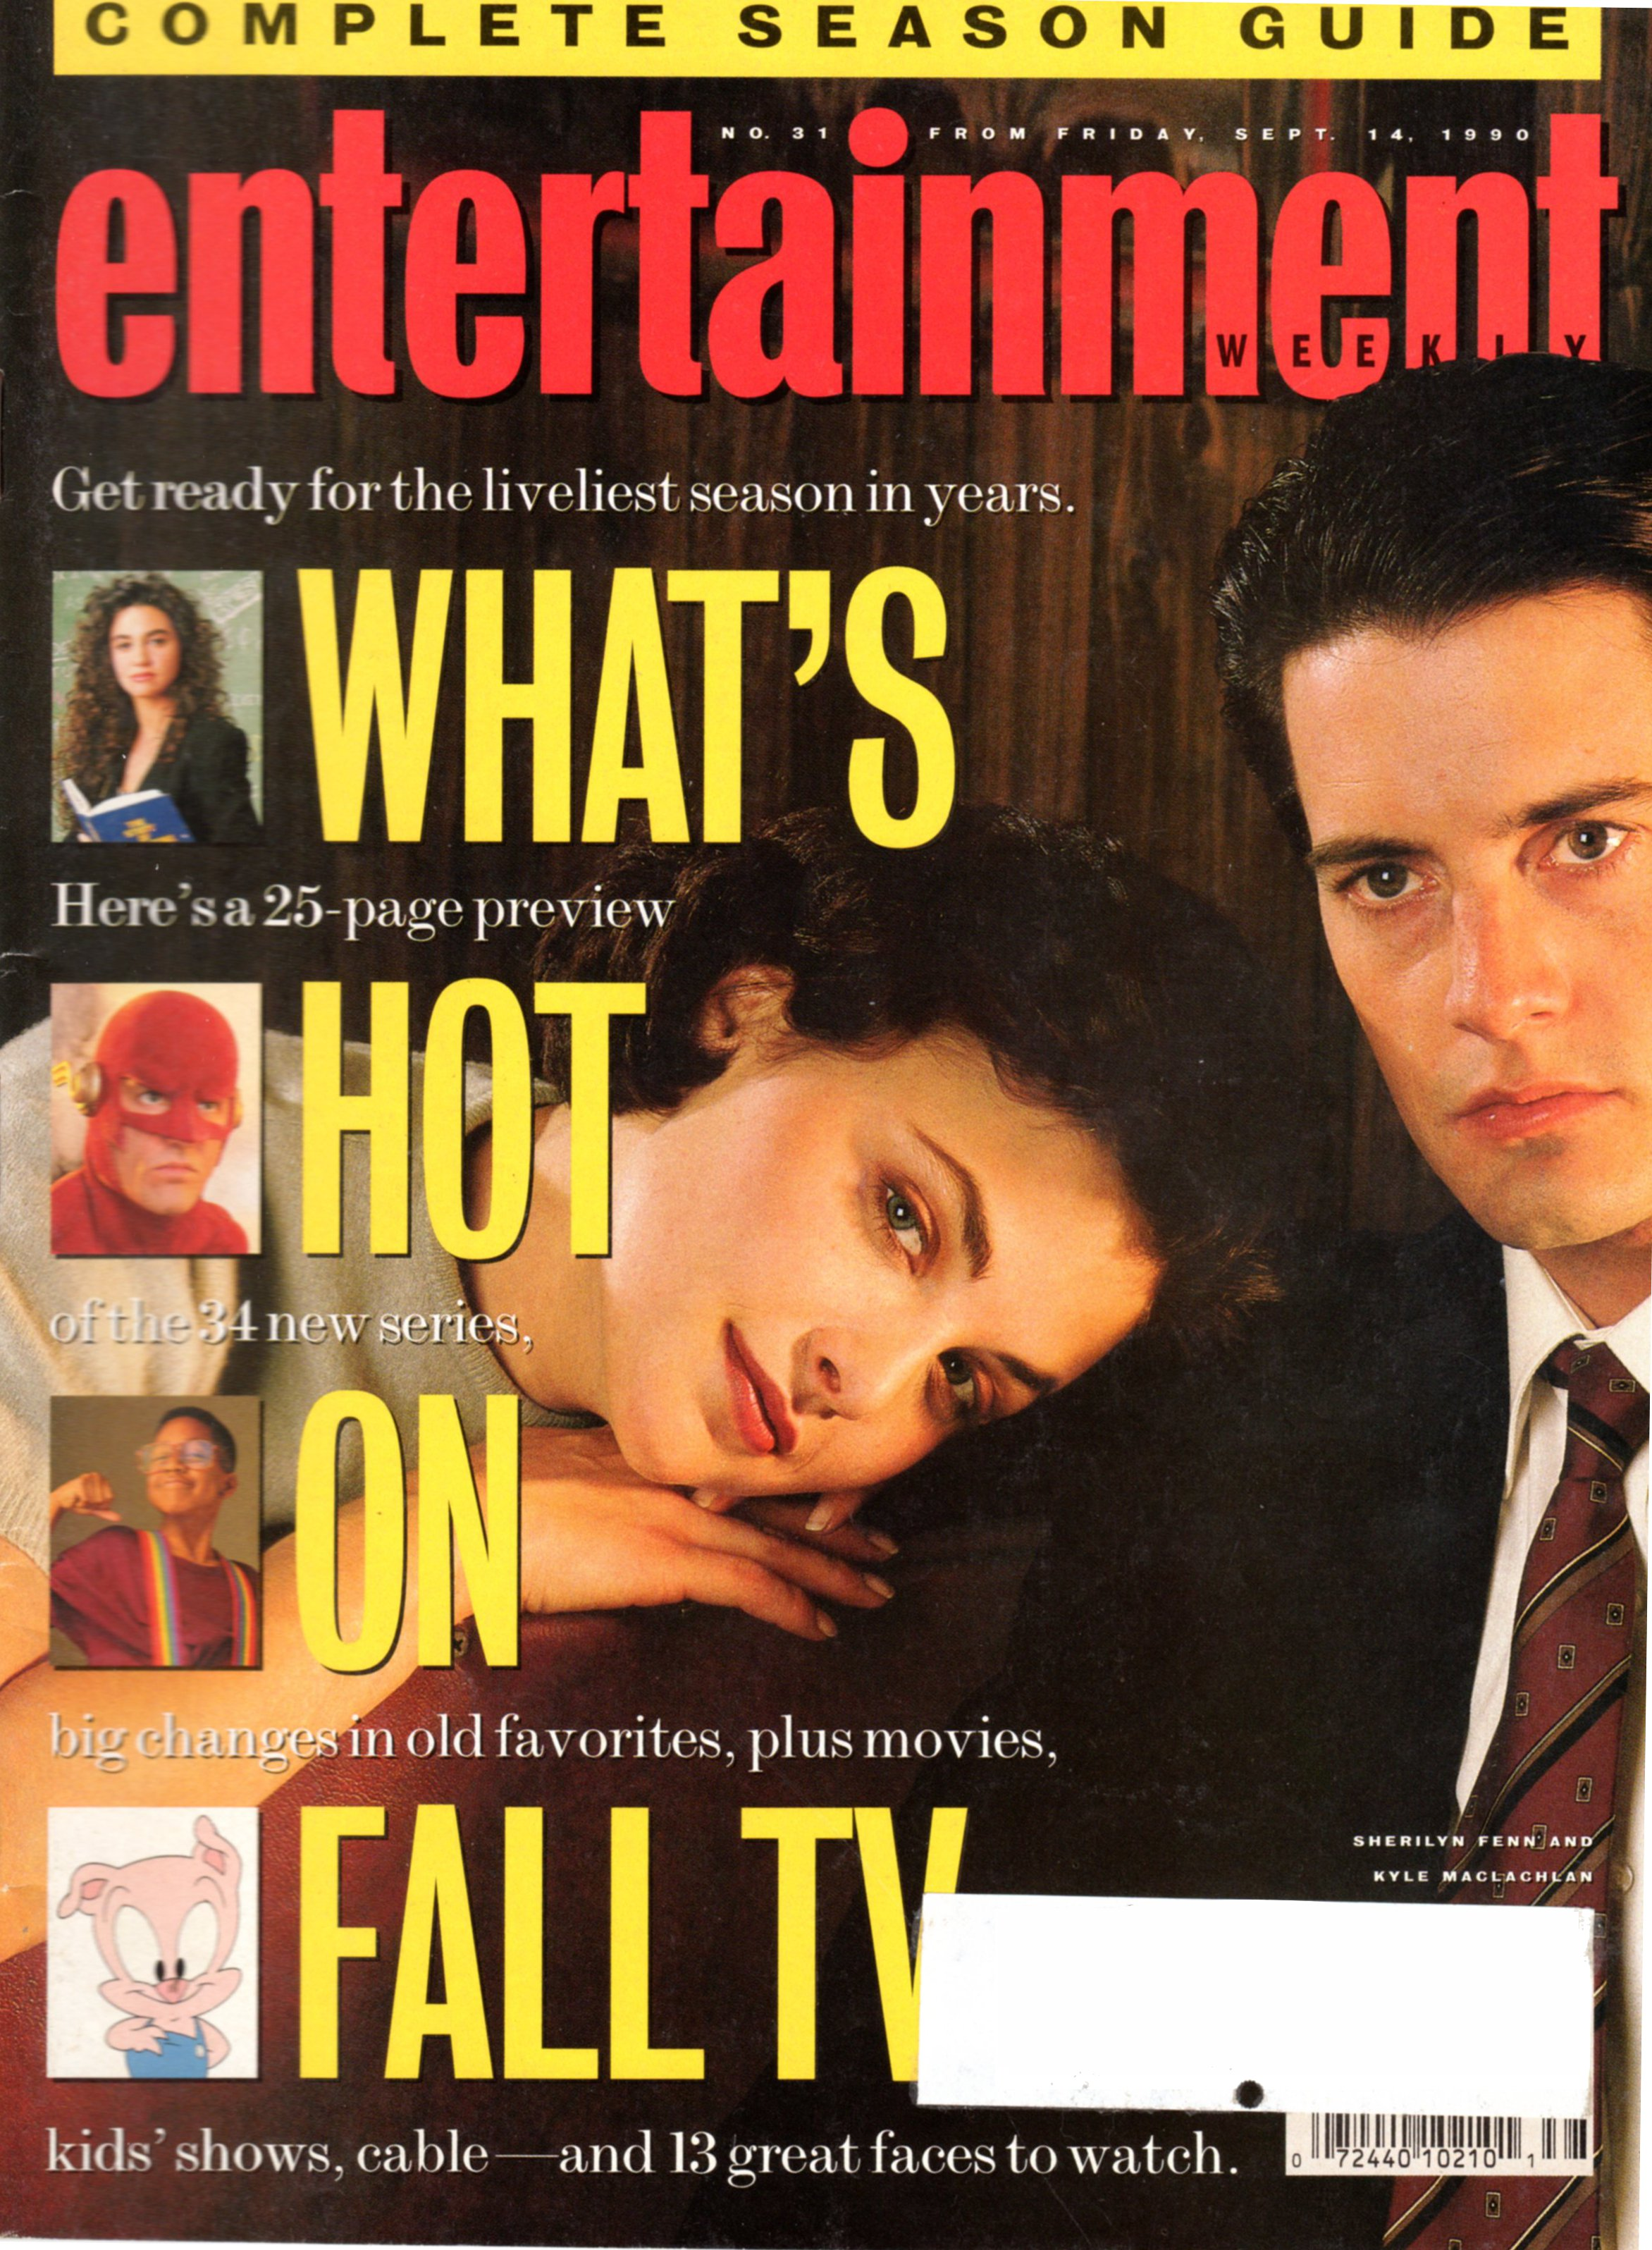 cover of Entertainment Weekly magazine showing Kyle MacLachlan and Sherilyn Fenn